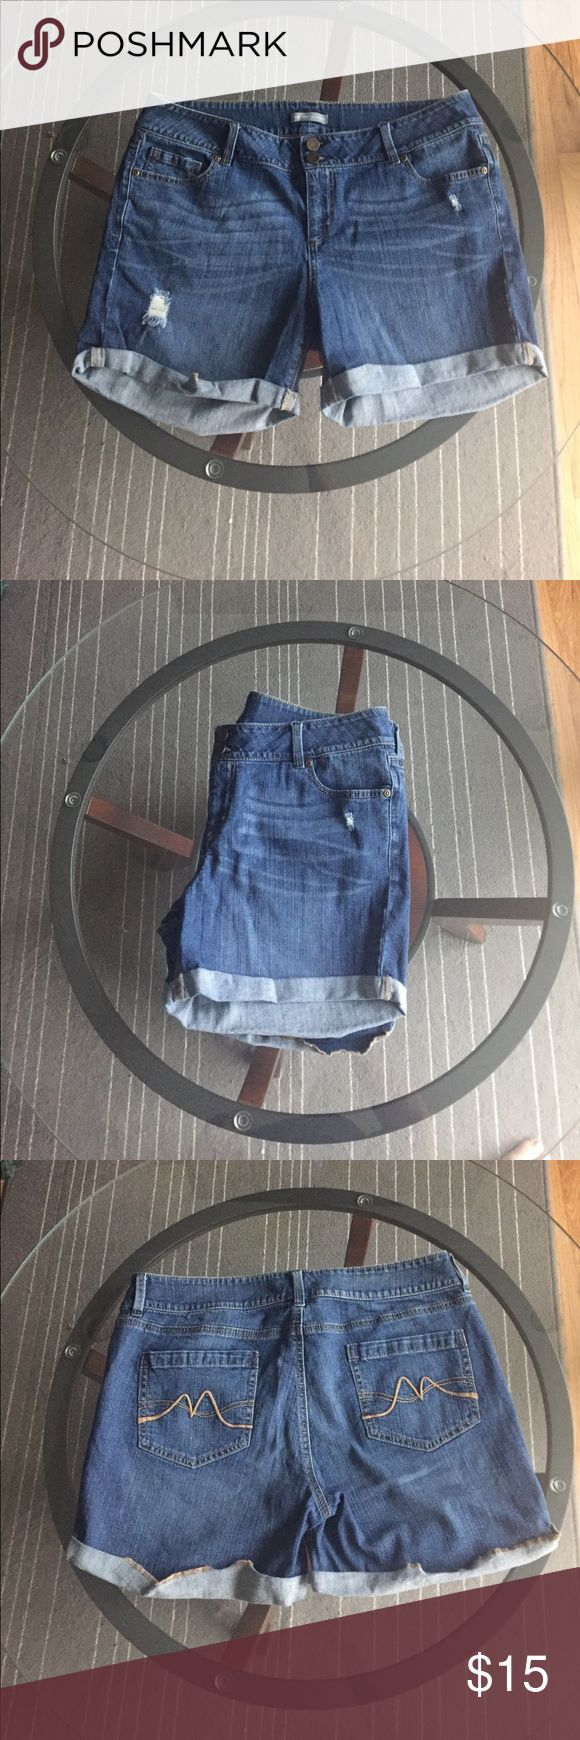 Long Jean Shorts Light weight jean shorts that are longer.  Cuffed up at the bottom New York & Company Shorts Jean Shorts